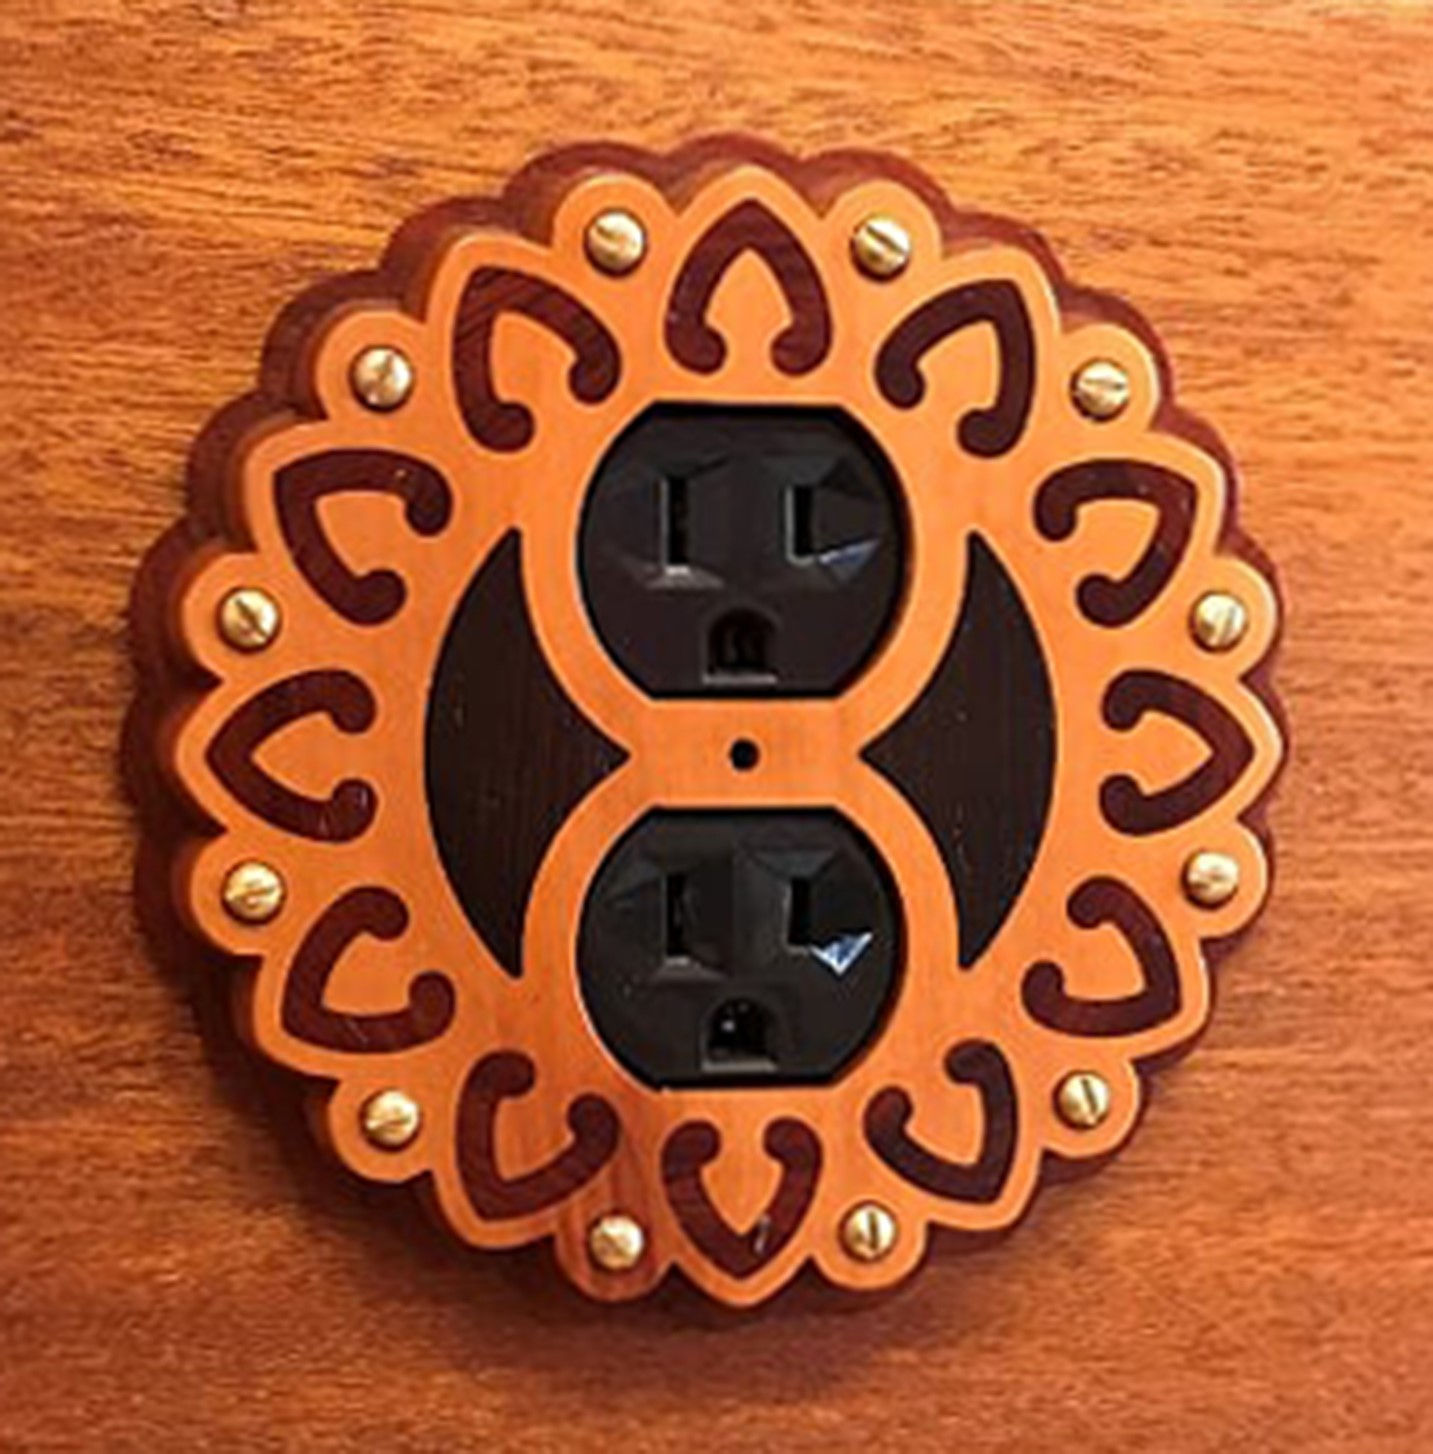 Outlet cover inspired by sconce